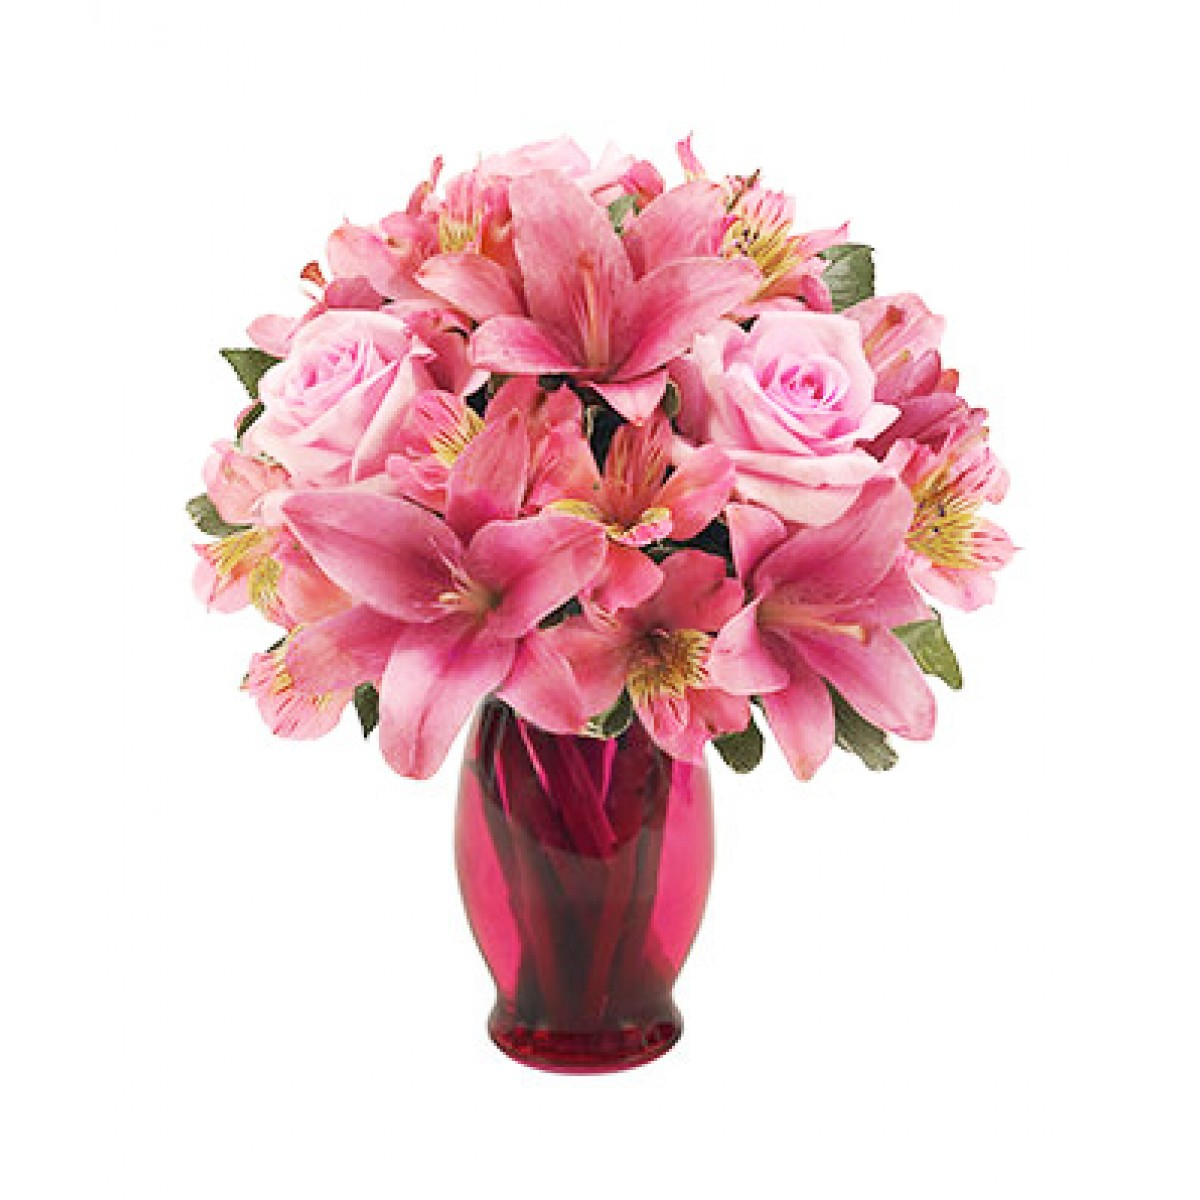 14 A Flower Vase Meaning In Hindi in measurements 1200 X 1200